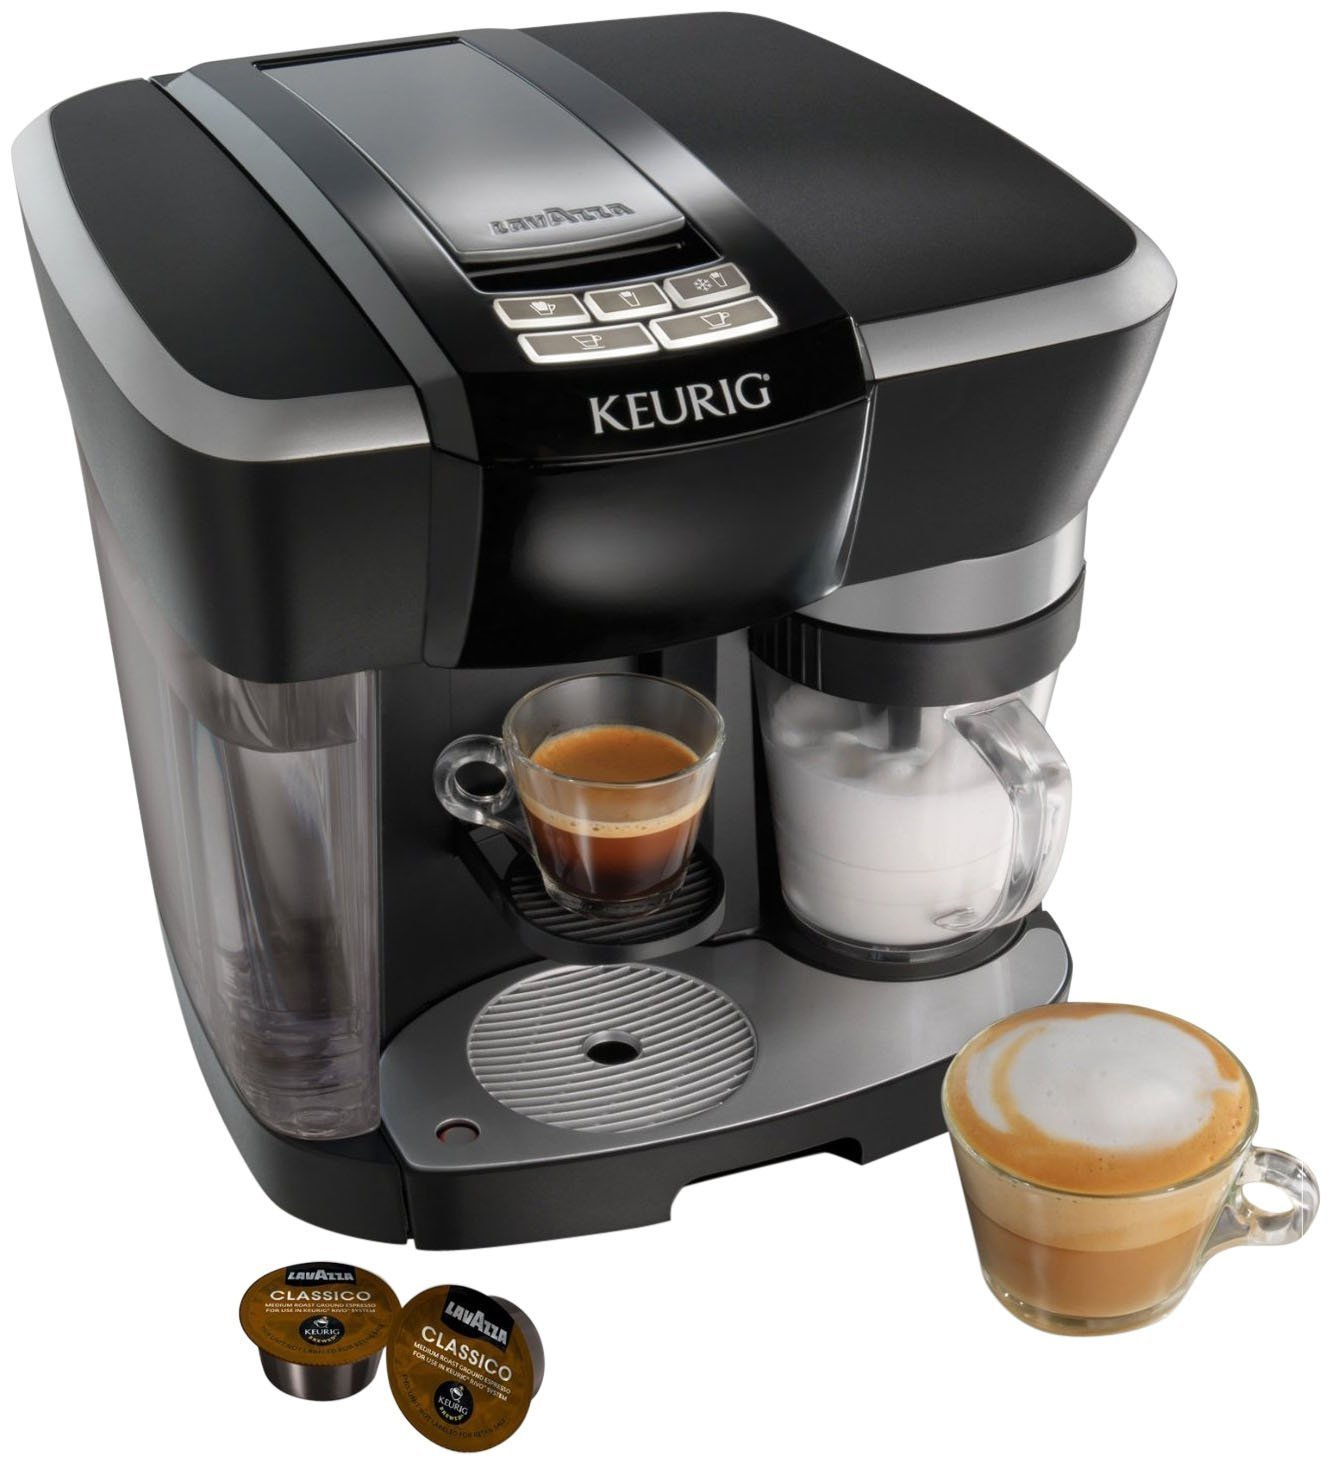 Keurig coffee makers at bed bath and beyond - Amazon Com The Keurig Rivo Cappuccino And Latte System Single Serve Brewing Machines Kitchen Dining